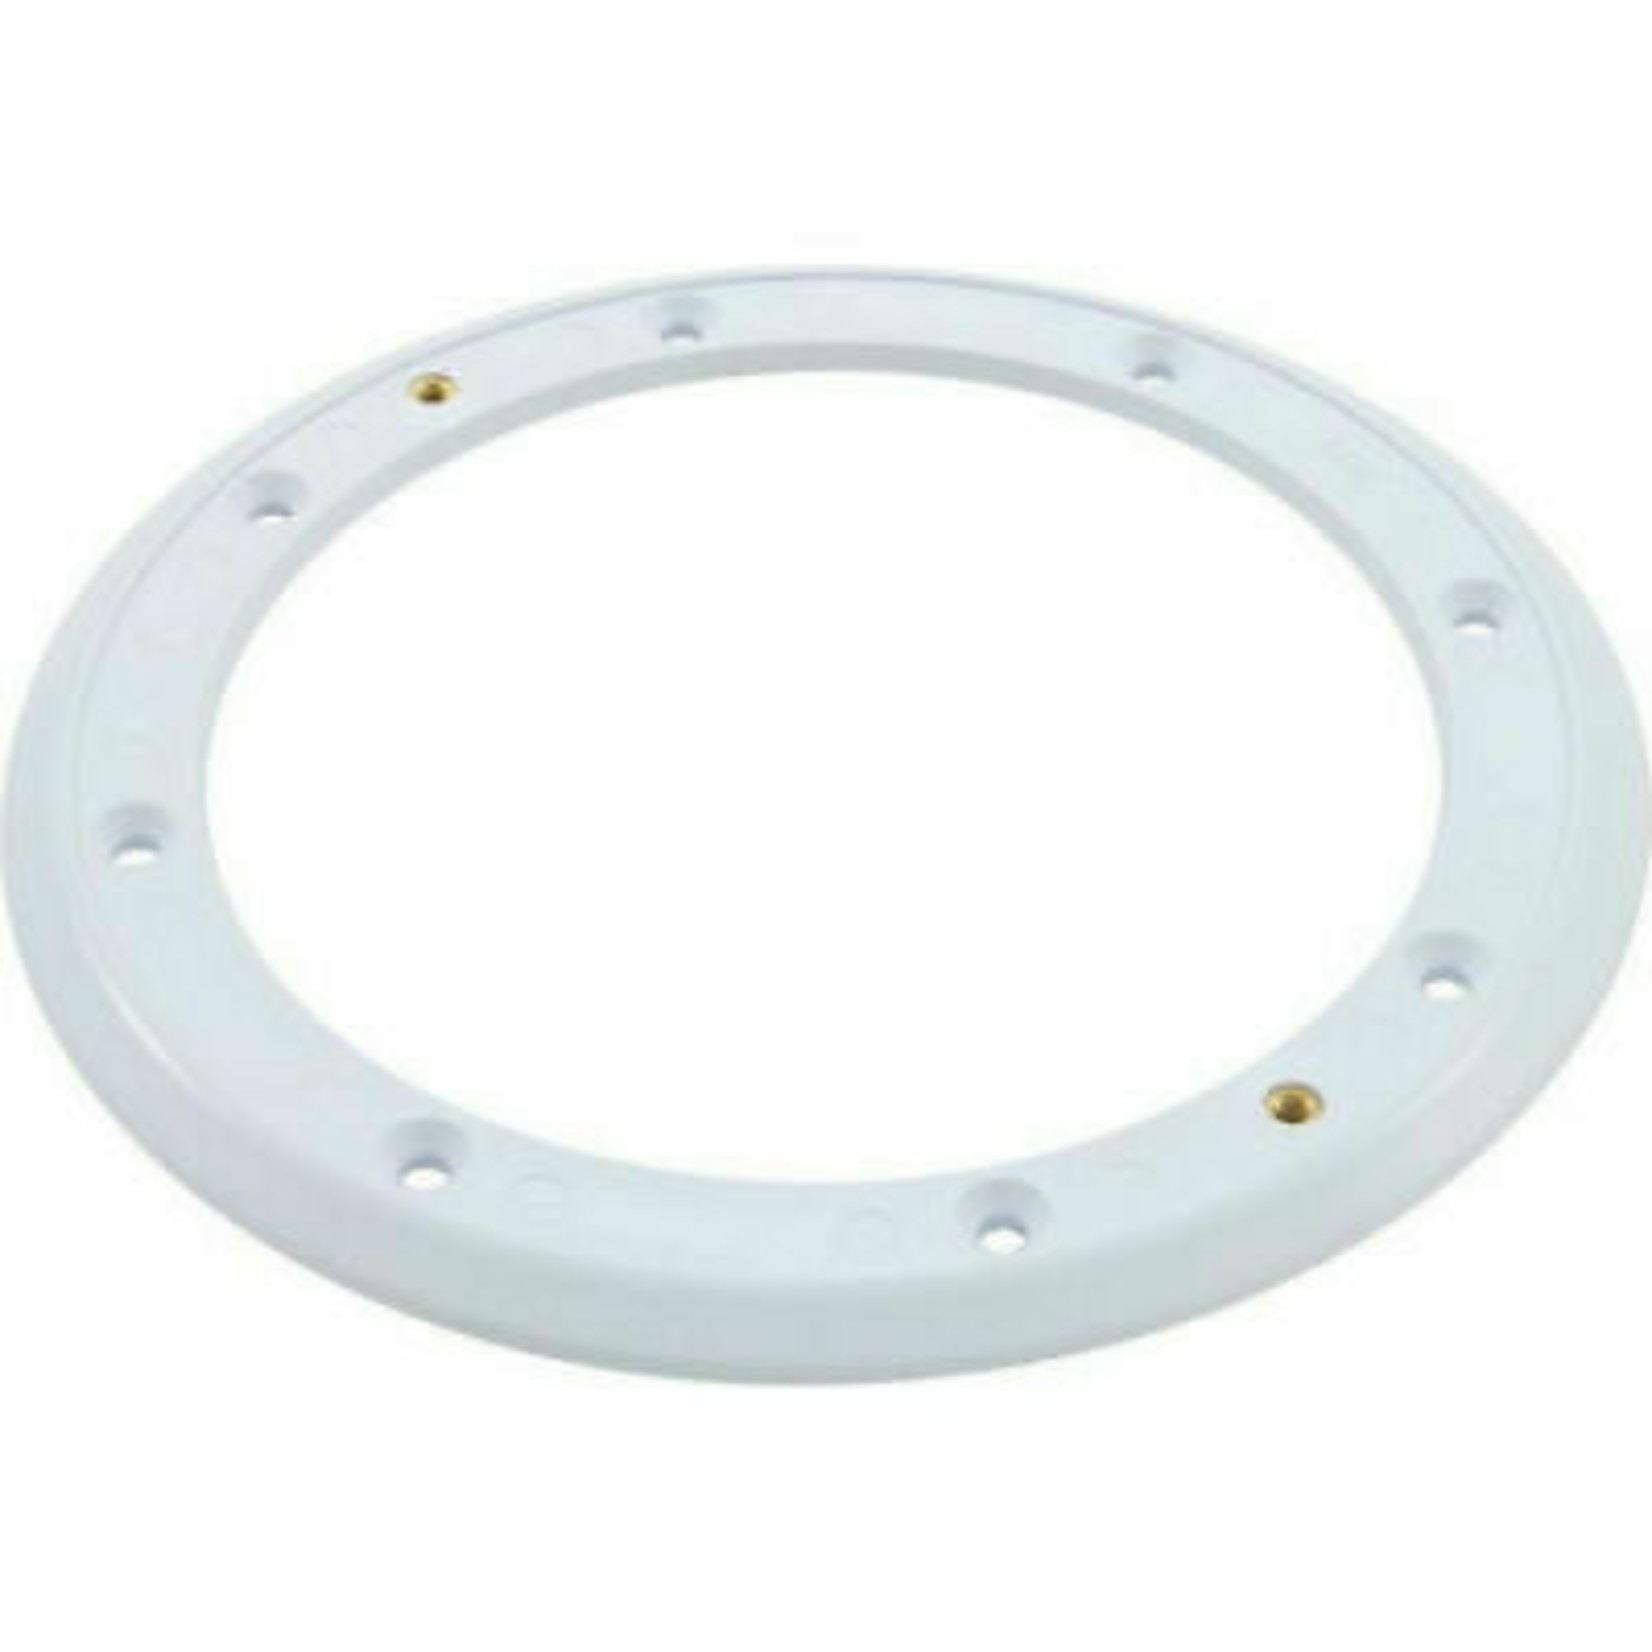 Jacuzzi JACUZZI MAIN DRAIN LINER RING